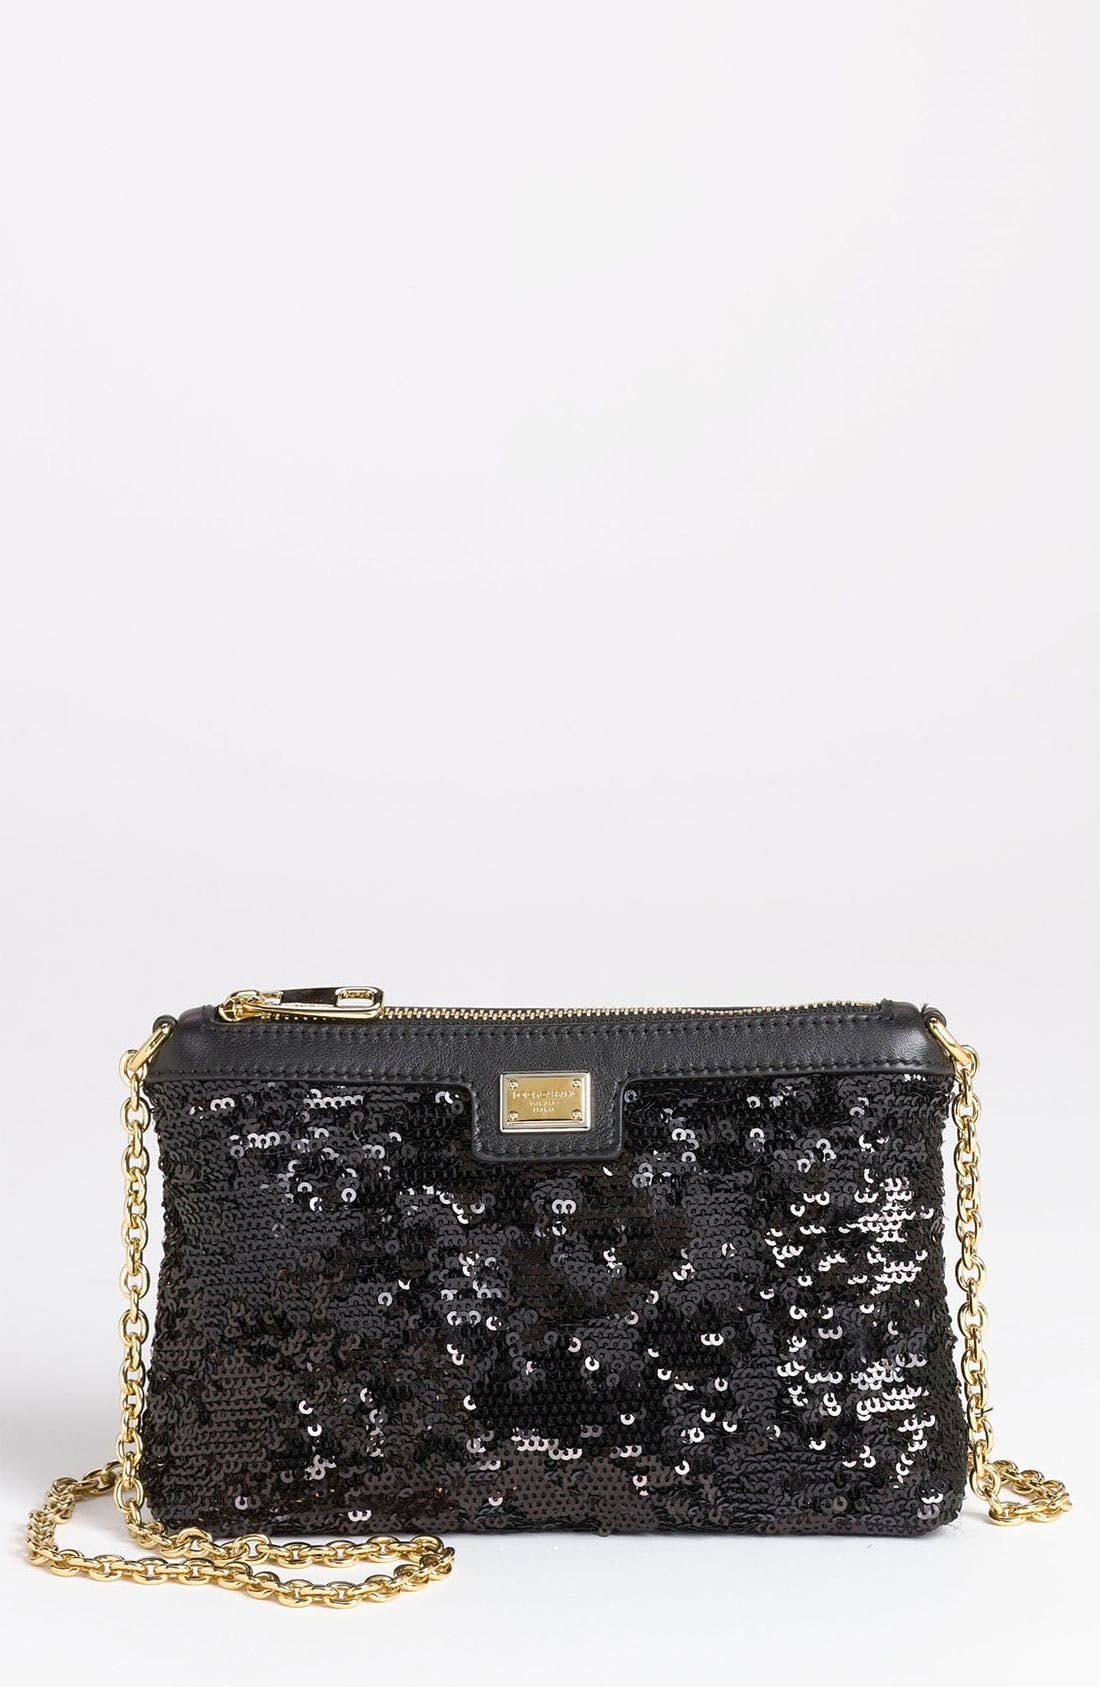 Main Image - Dolce&Gabbana 'Miss Mini' Sequin Crossbody Bag